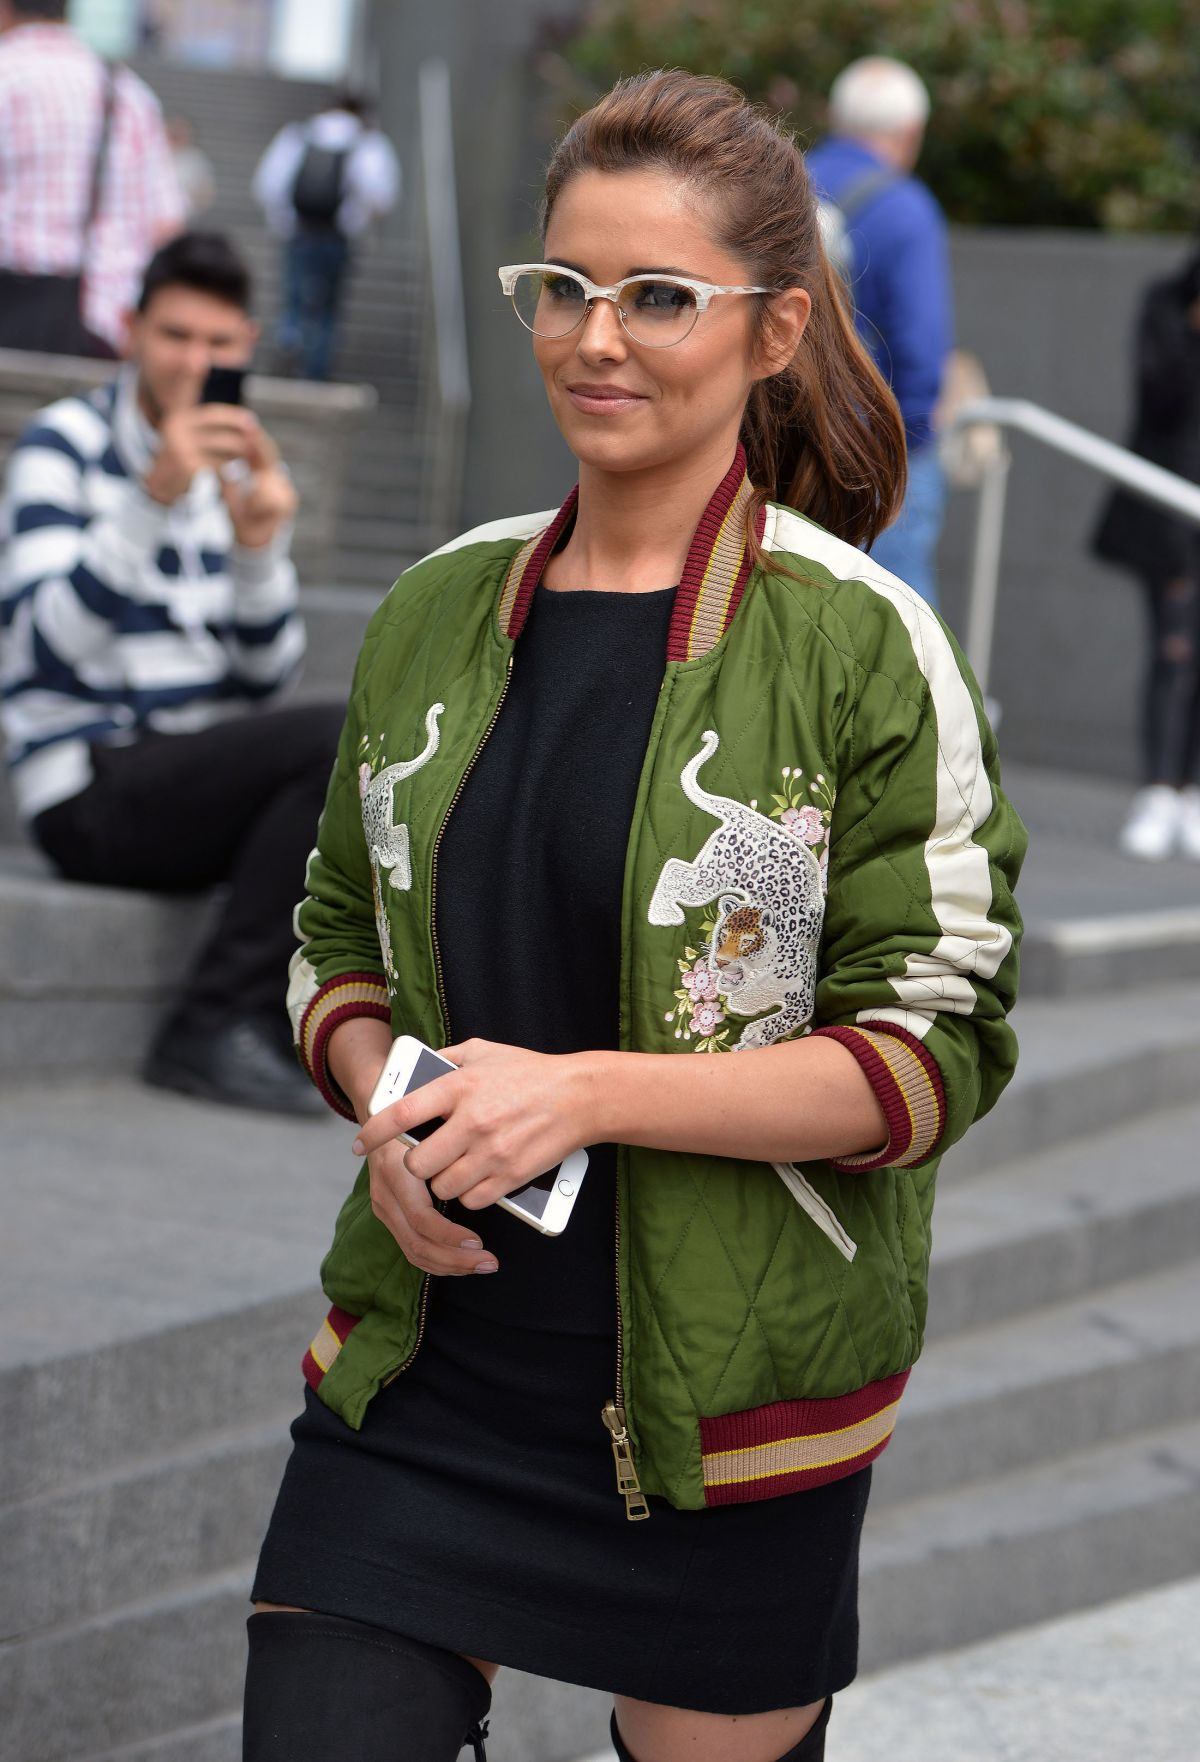 Cheryl Cole At Soho House Exclusive 2016 House Festival In